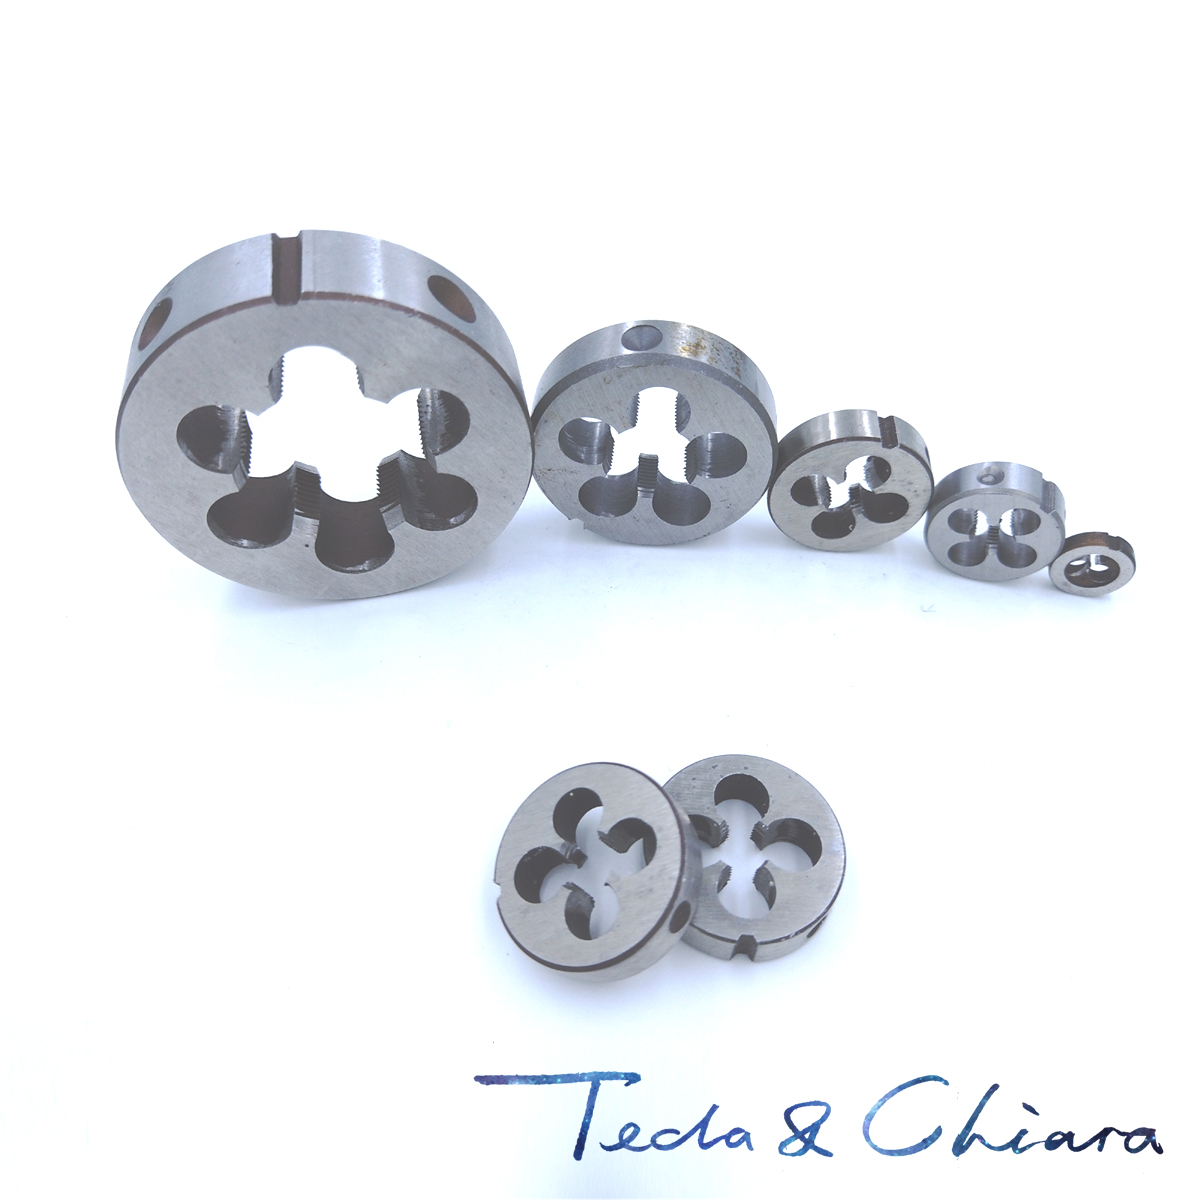 M12 M14 X 1mm 1.25mm 1.5mm 1.75mm 2mm Metric Left Hand Die Pitch Threading Tools For Mold Machining * 1 1.25 1.5 1.75 2